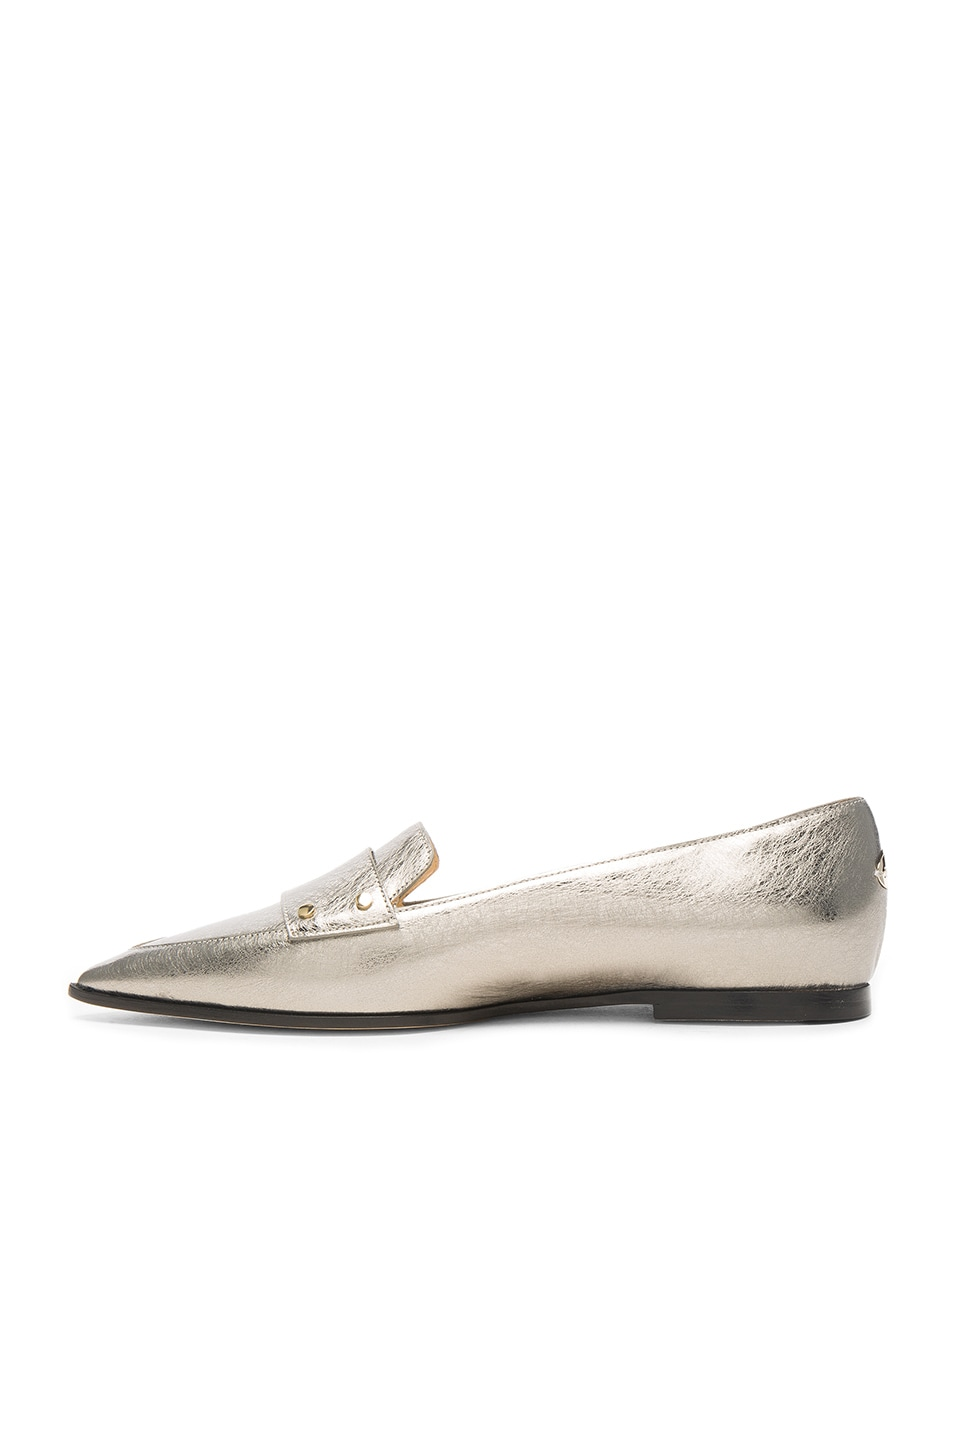 Image 5 of Jimmy Choo Leather Gia Flats in Vintage Silver